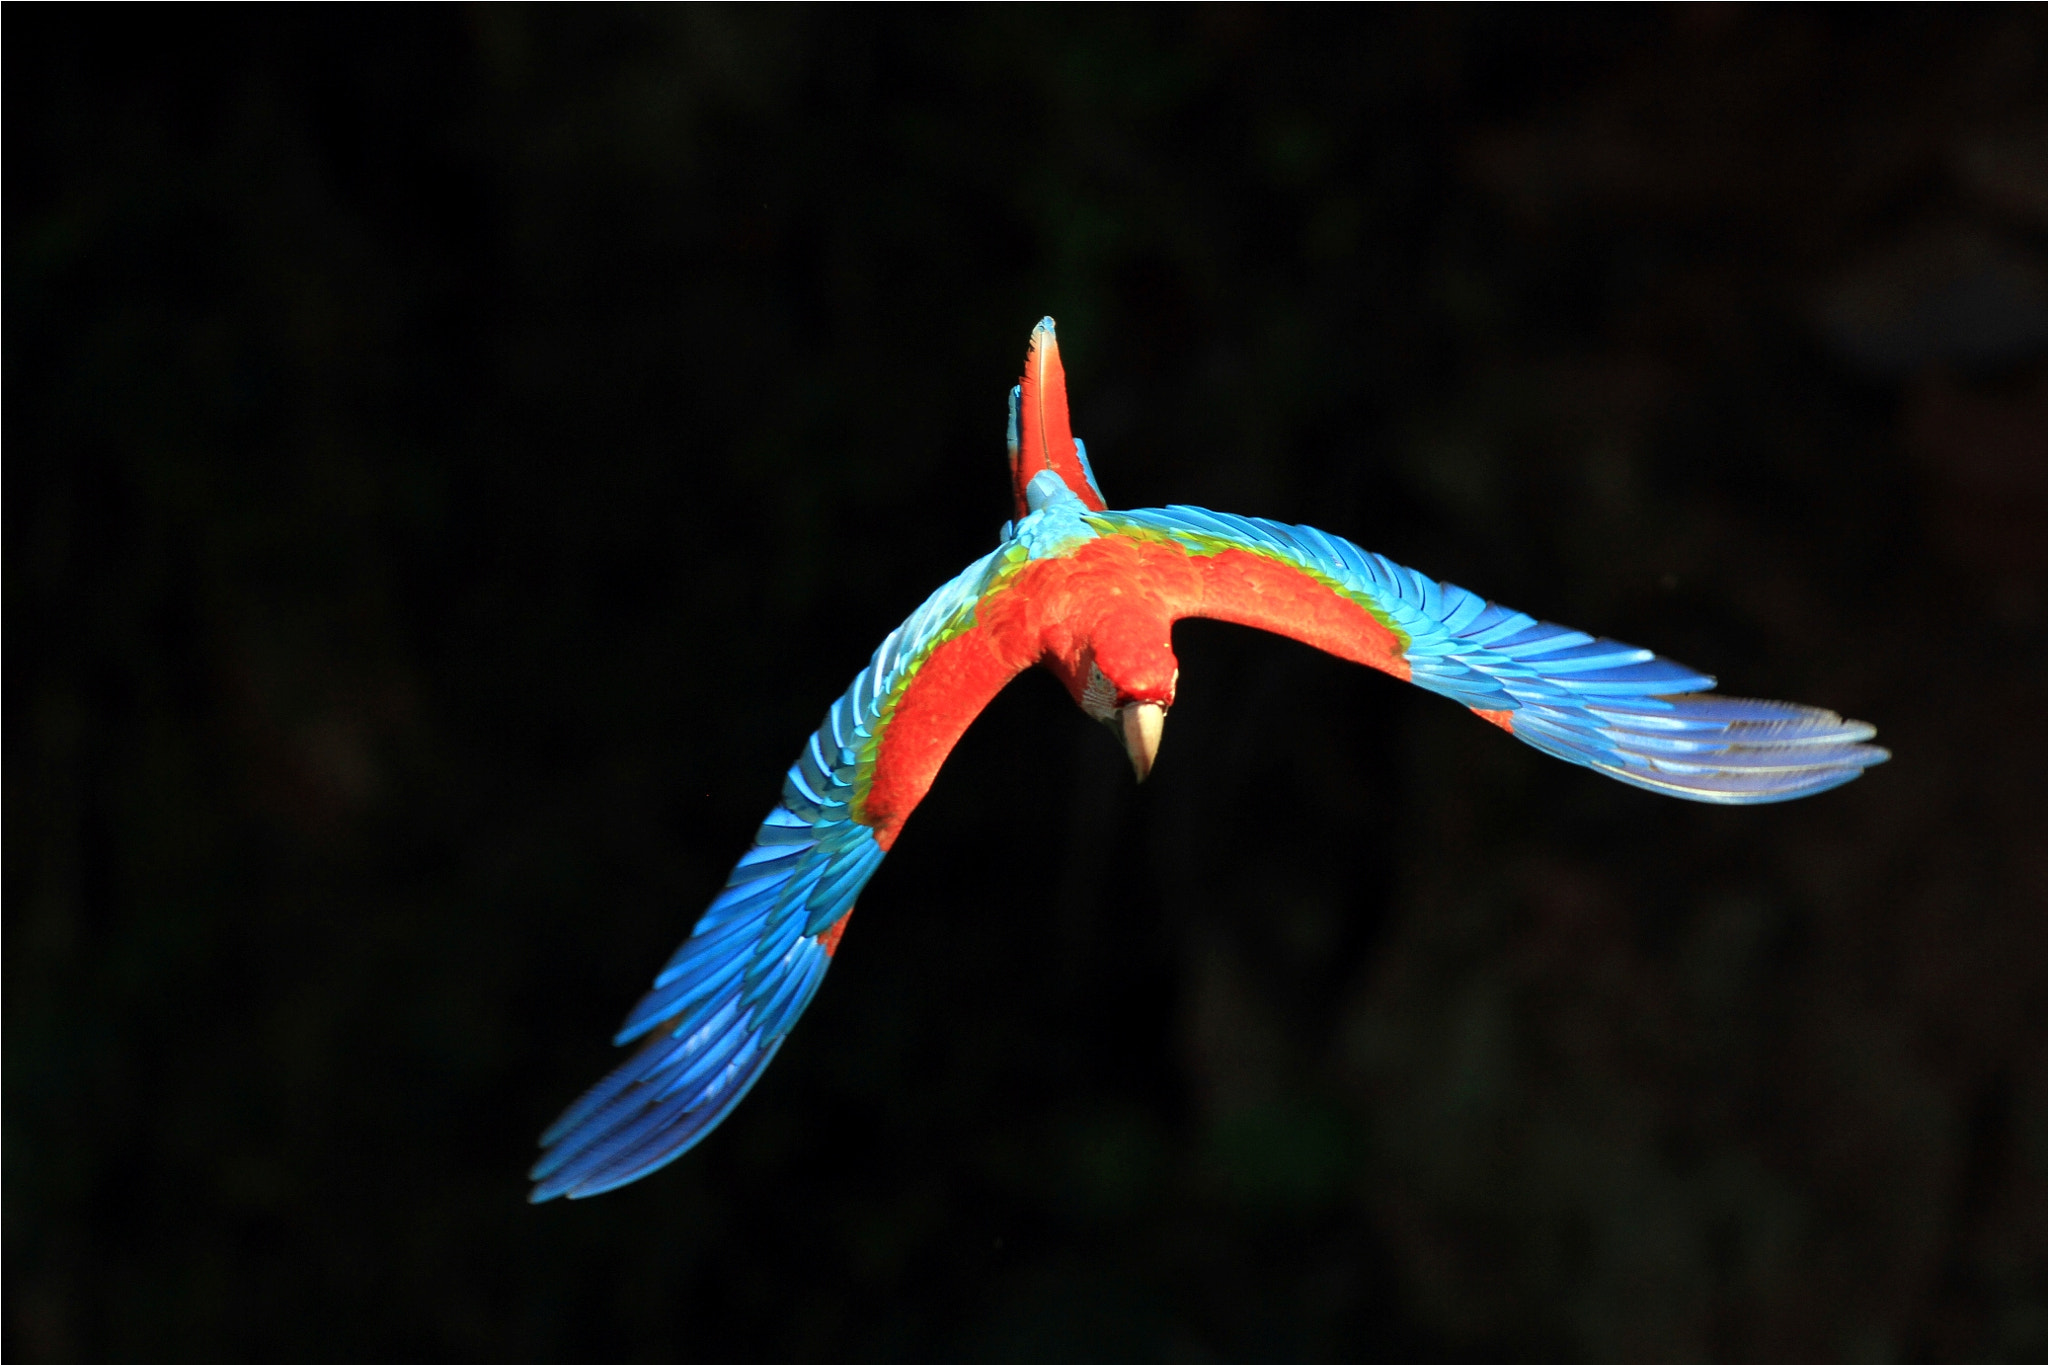 Photograph Red Macaw..... by Itamar Campos on 500px